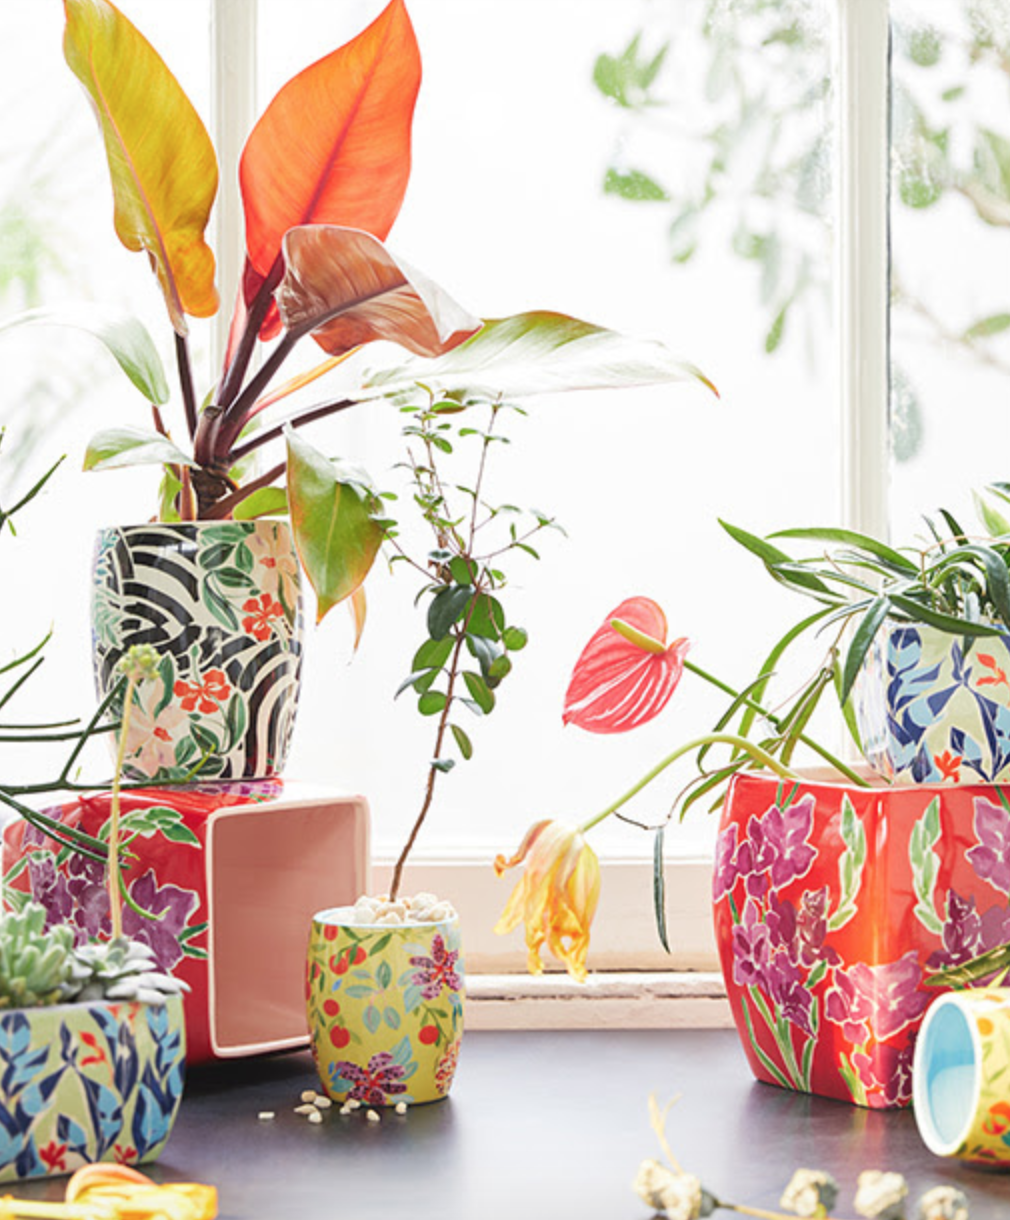 anthropologie-pots.jpg